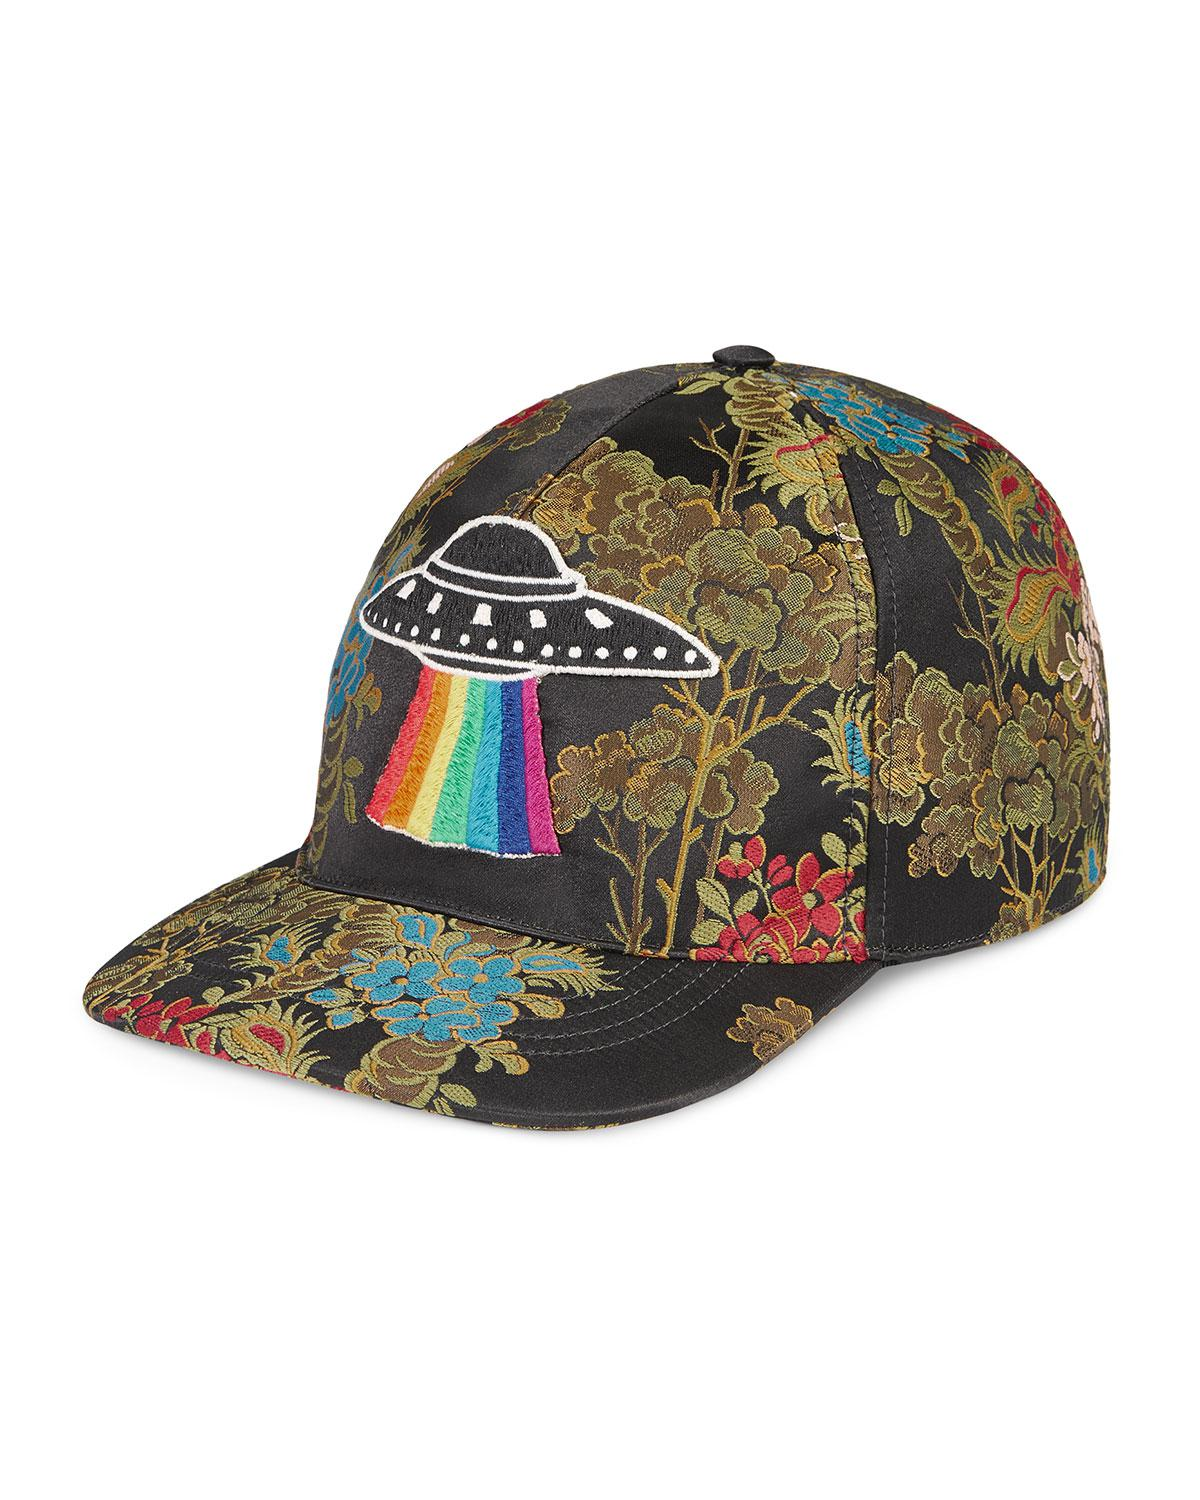 a64f72eb74e Lyst gucci floral baseball cap with ufo in green for men jpg 1200x1500  Gucci kangol bucket